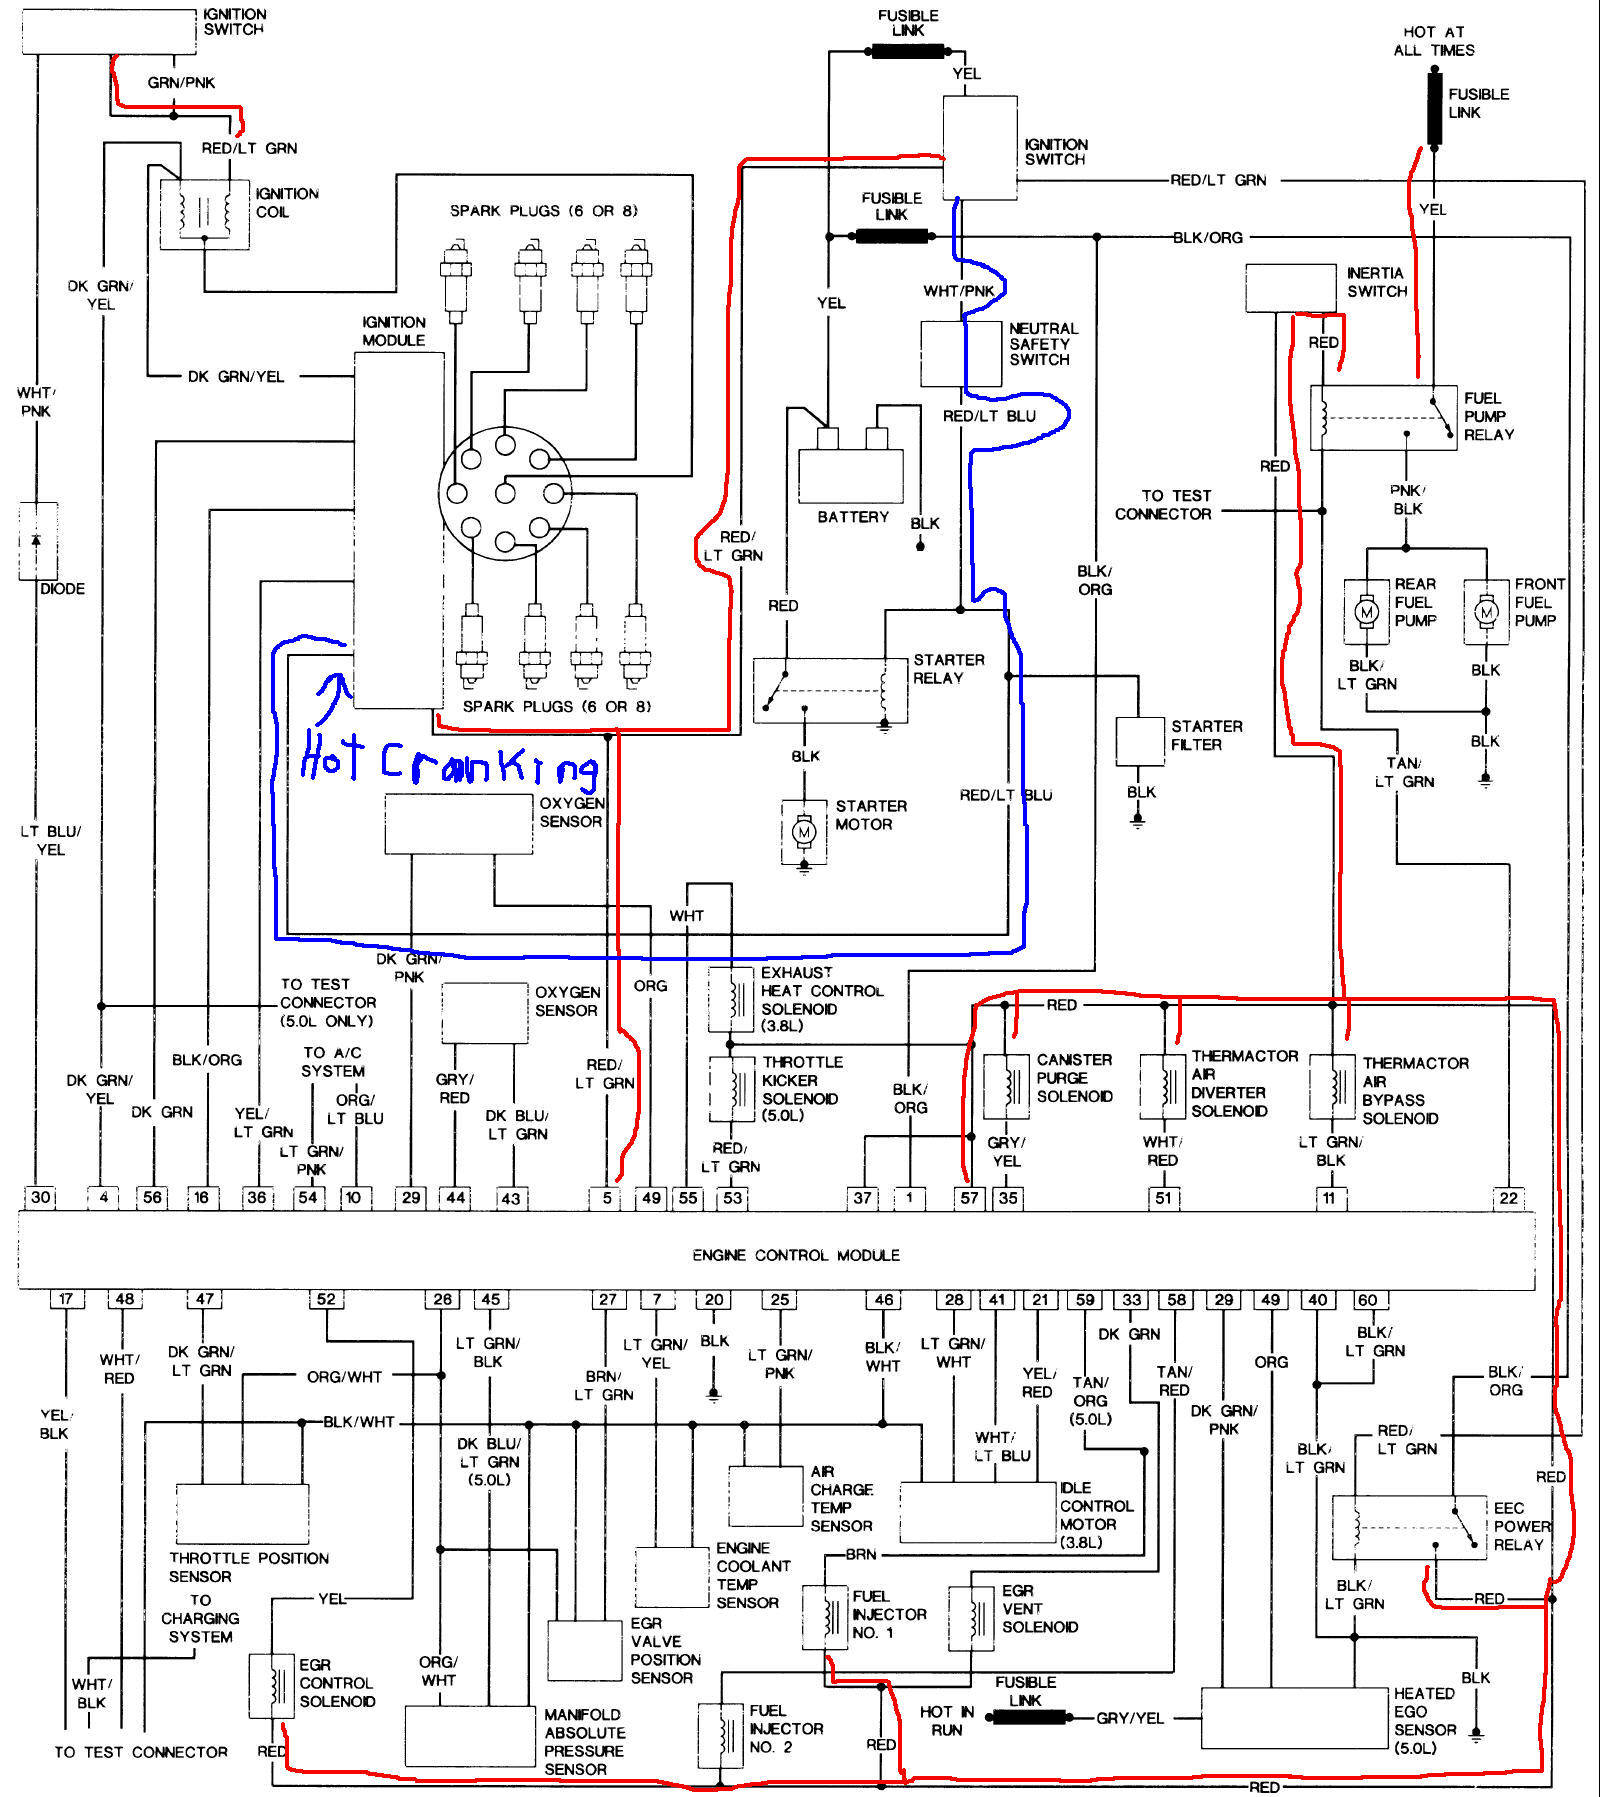 1985 ford crown victoria wiring diagram  1985  free engine 1988 ford crown victoria radio wiring diagram 2004 Ford Crown Victoria Wiring Diagram